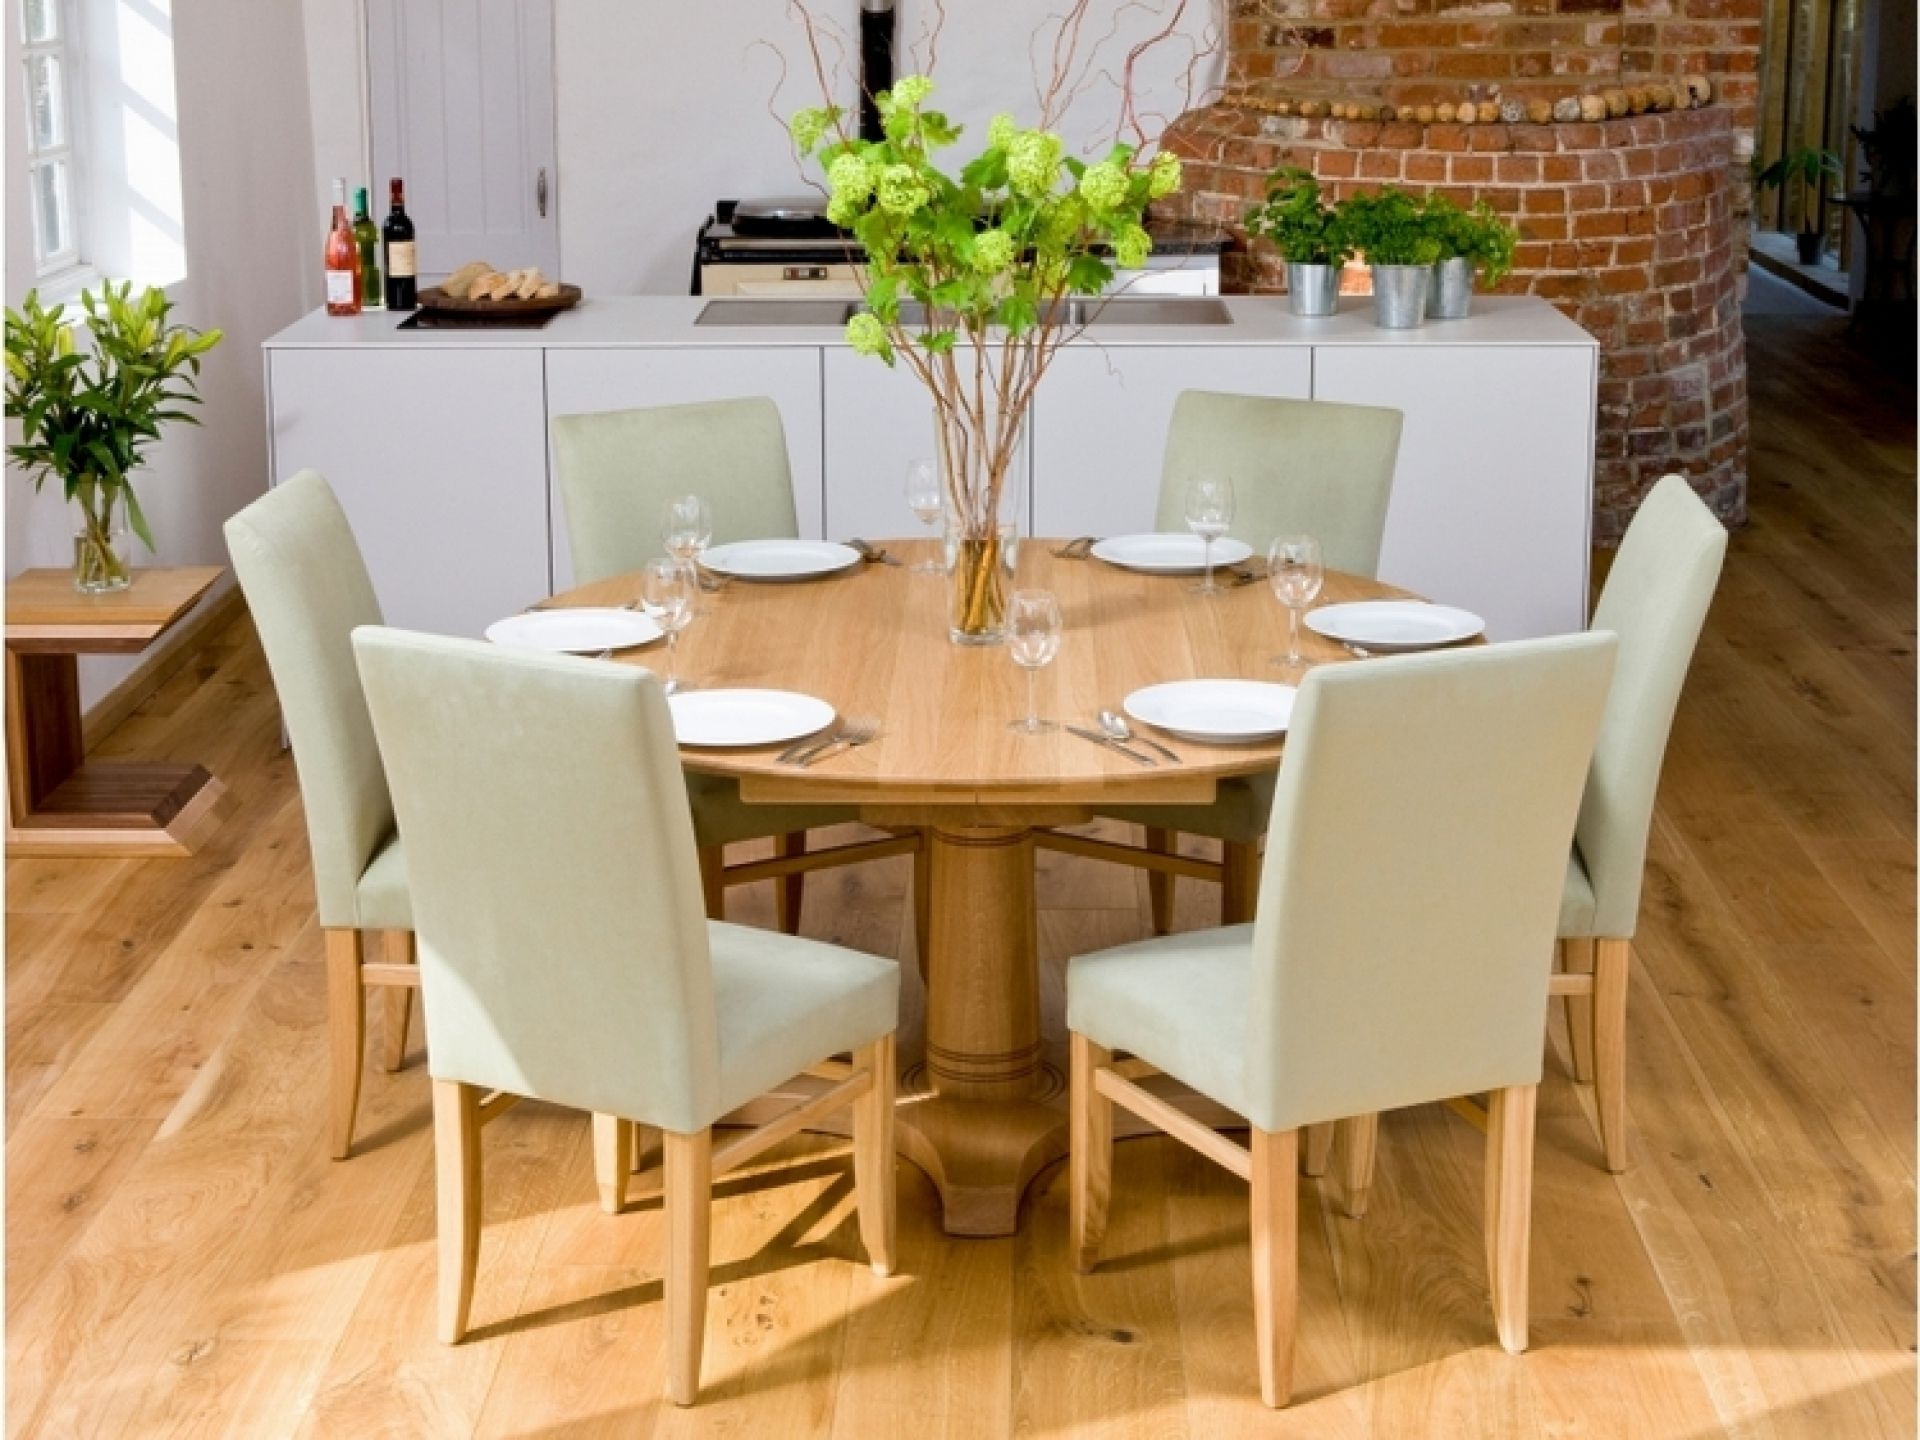 Superieur Place Grey Lather Chairs And Round Dining Table For 6 In Minimalist Dining  Room On Laminate